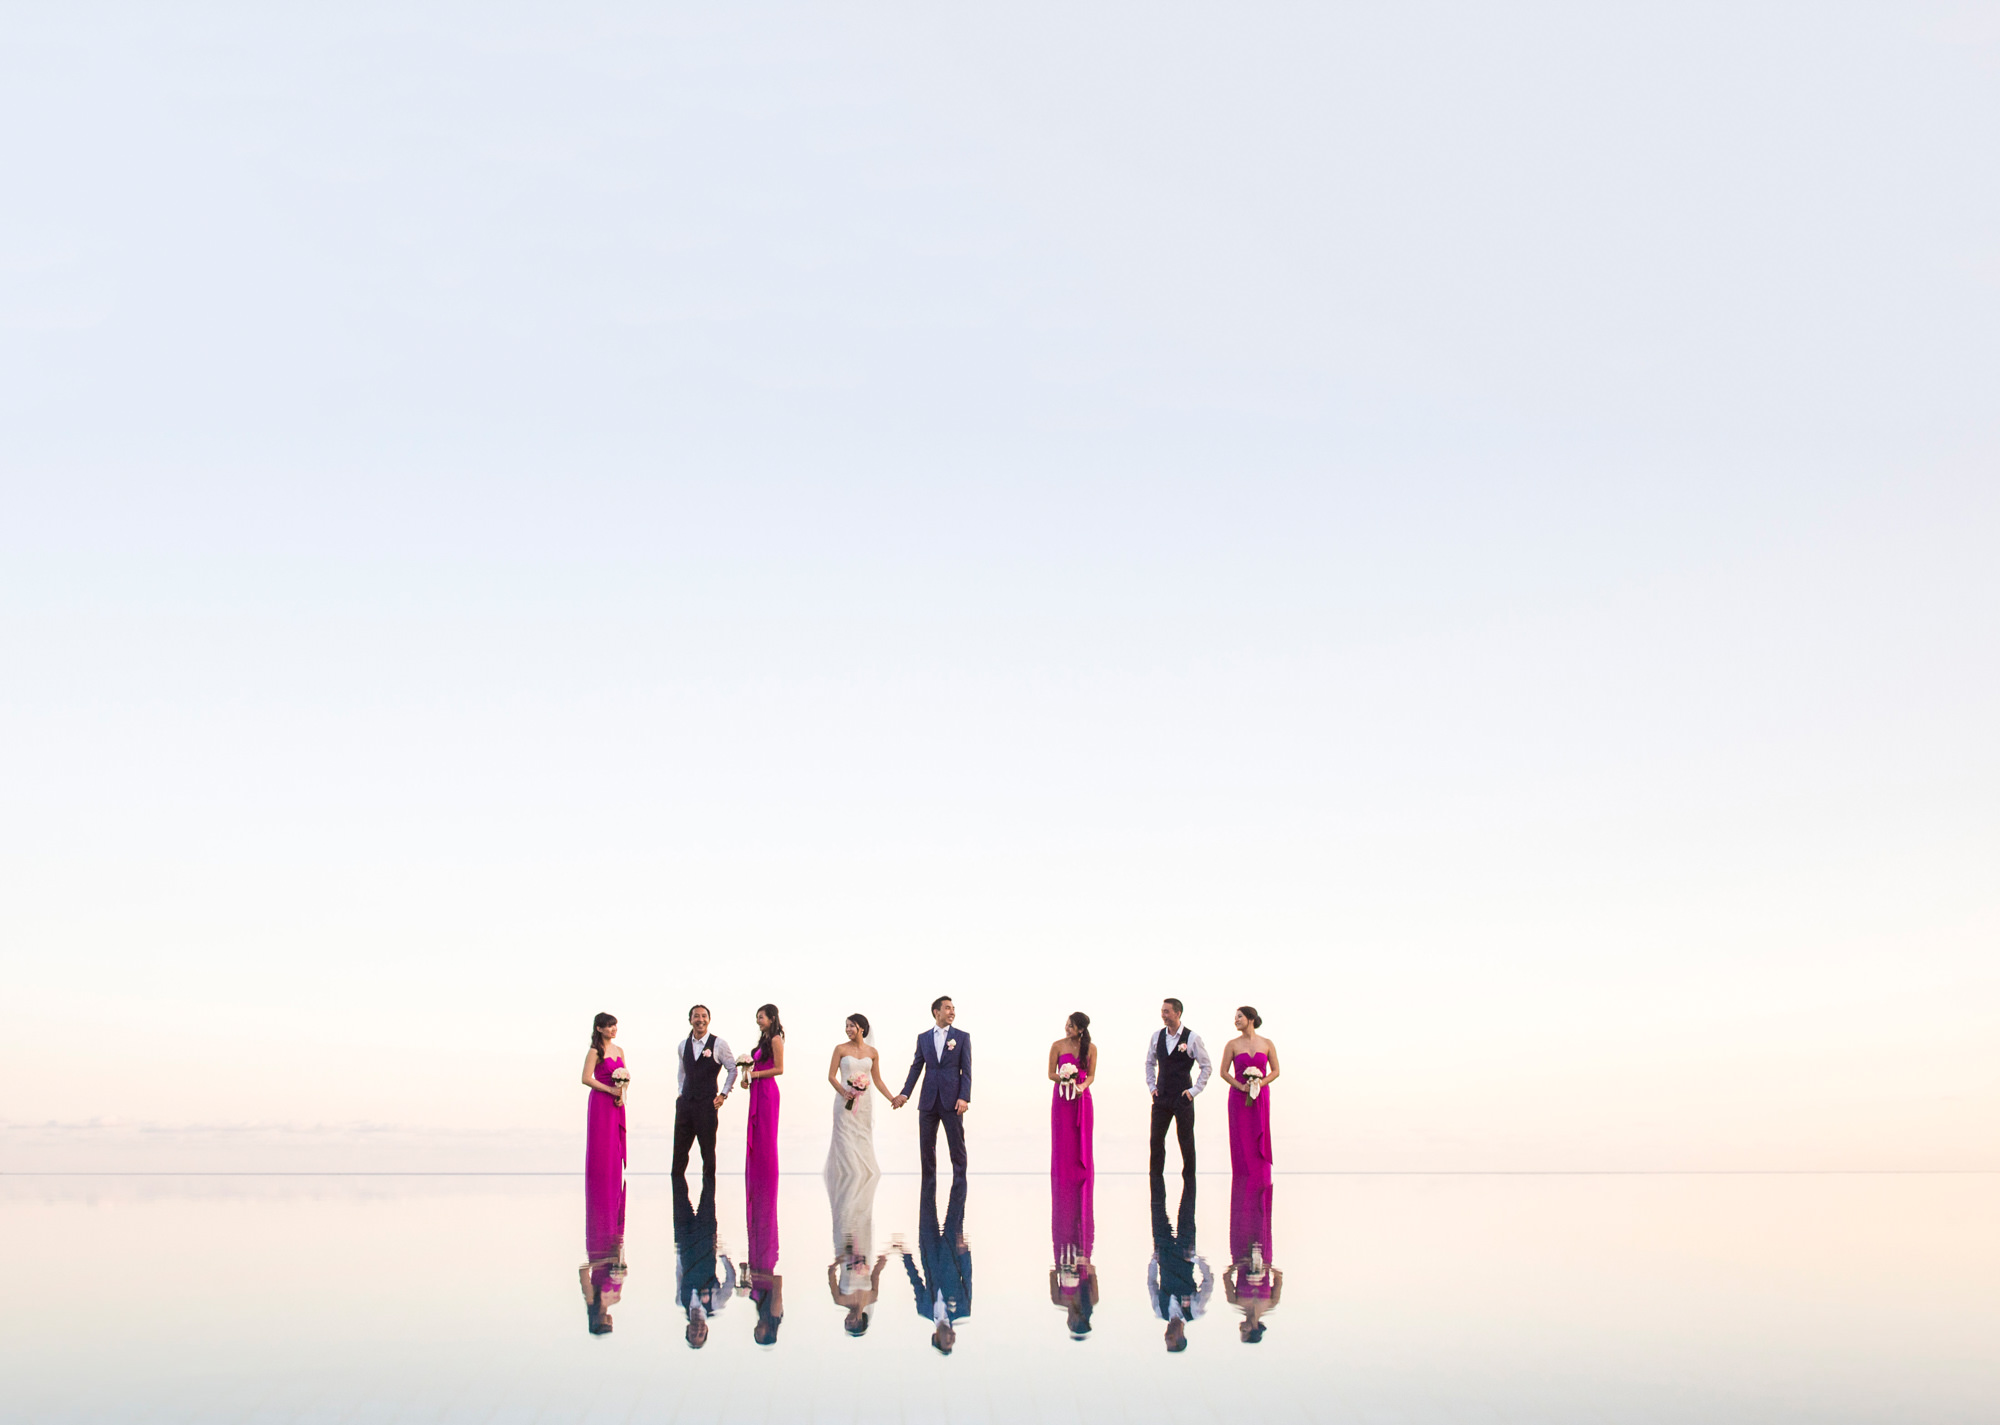 Chic bridal party reflected in infinity pool - best wedding portraits of the decade Studio Impressions Photography